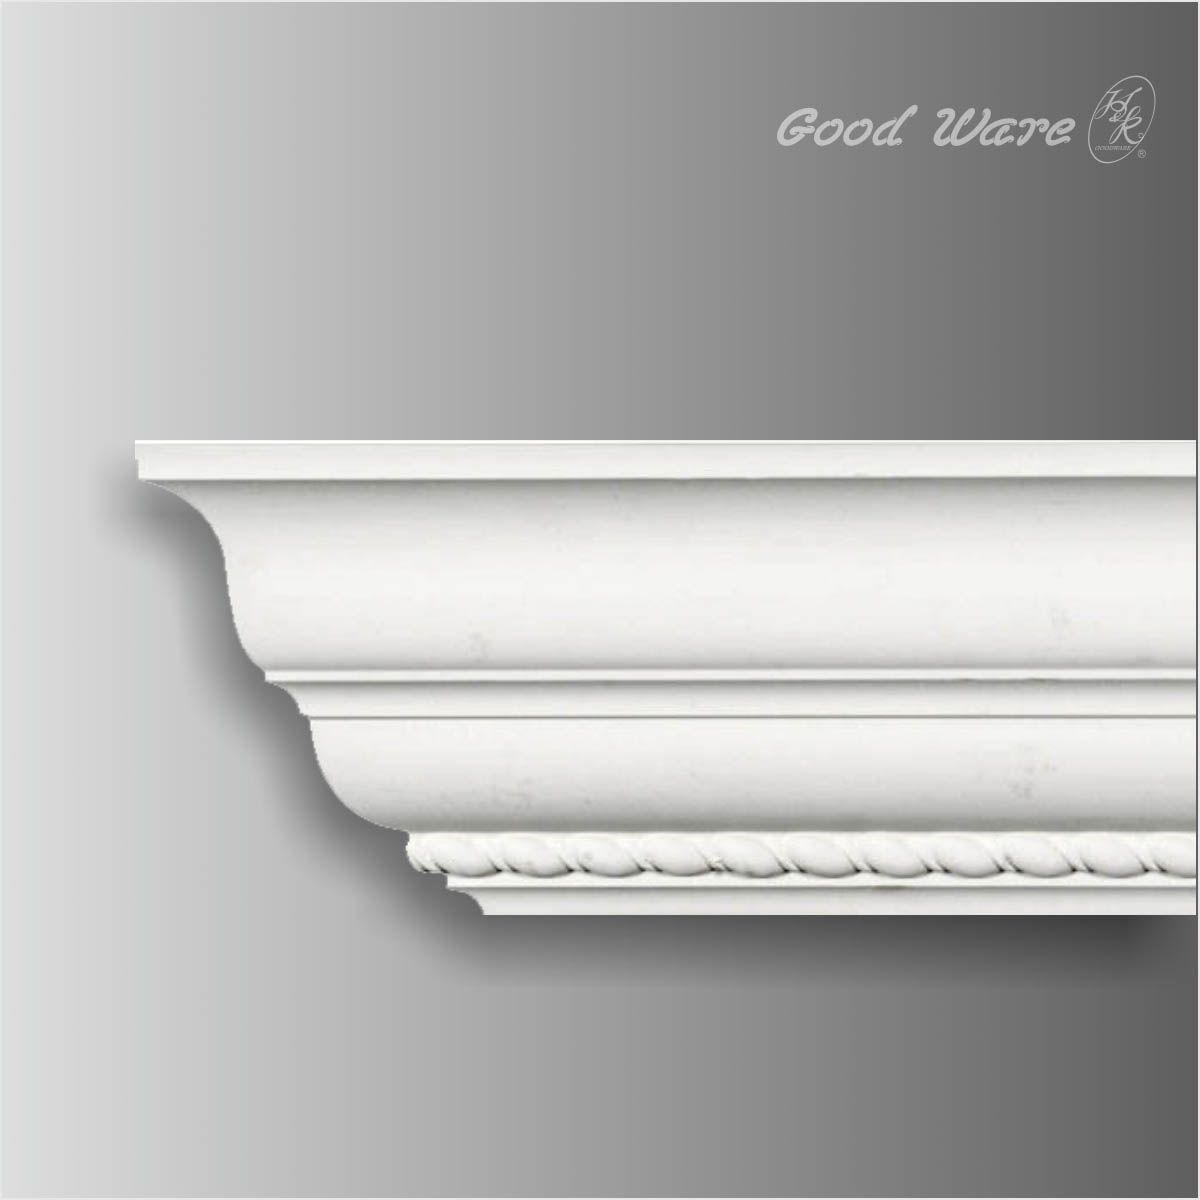 Gm 01212 Classic Crown Molding With Rope Design Crown Molding